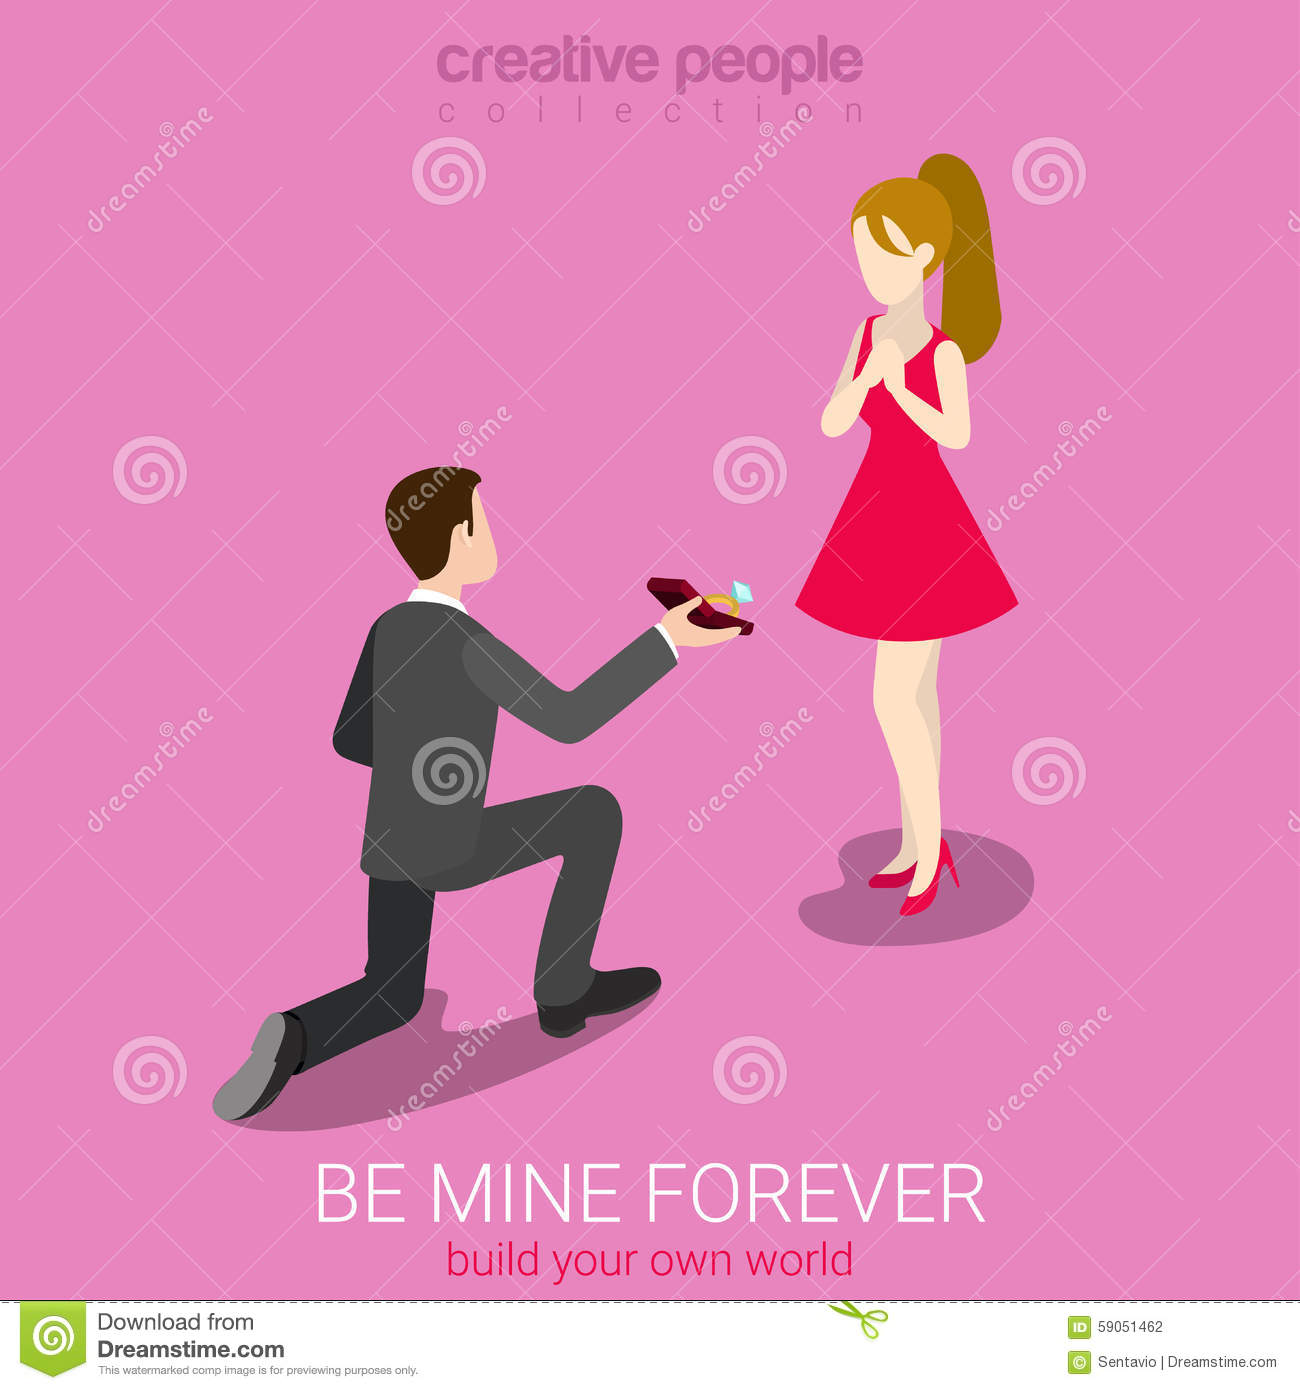 The Romantic Concept With Man Making Marriage Proposal